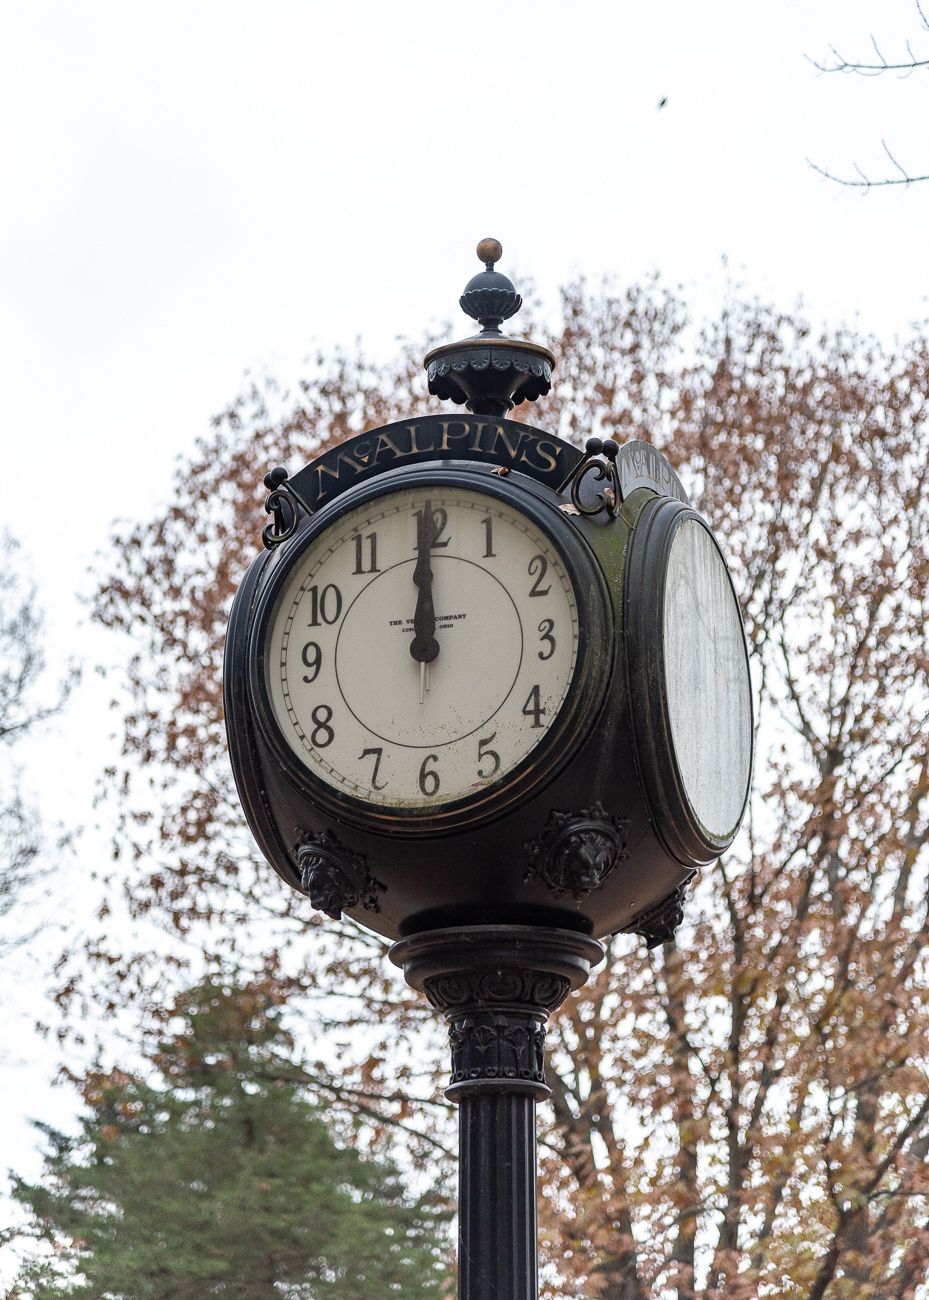 The Verdin Company installed the locally famous McAlpin's post clock on 4th Street in 1901. After McAlpin's closed in 1996, the clock was relocated to Heritage Village where it sits between Chester Station and Benedict Cottage.{ }/ Image: Phil Armstrong, Cincinnati Refined // Published: 12.5.19